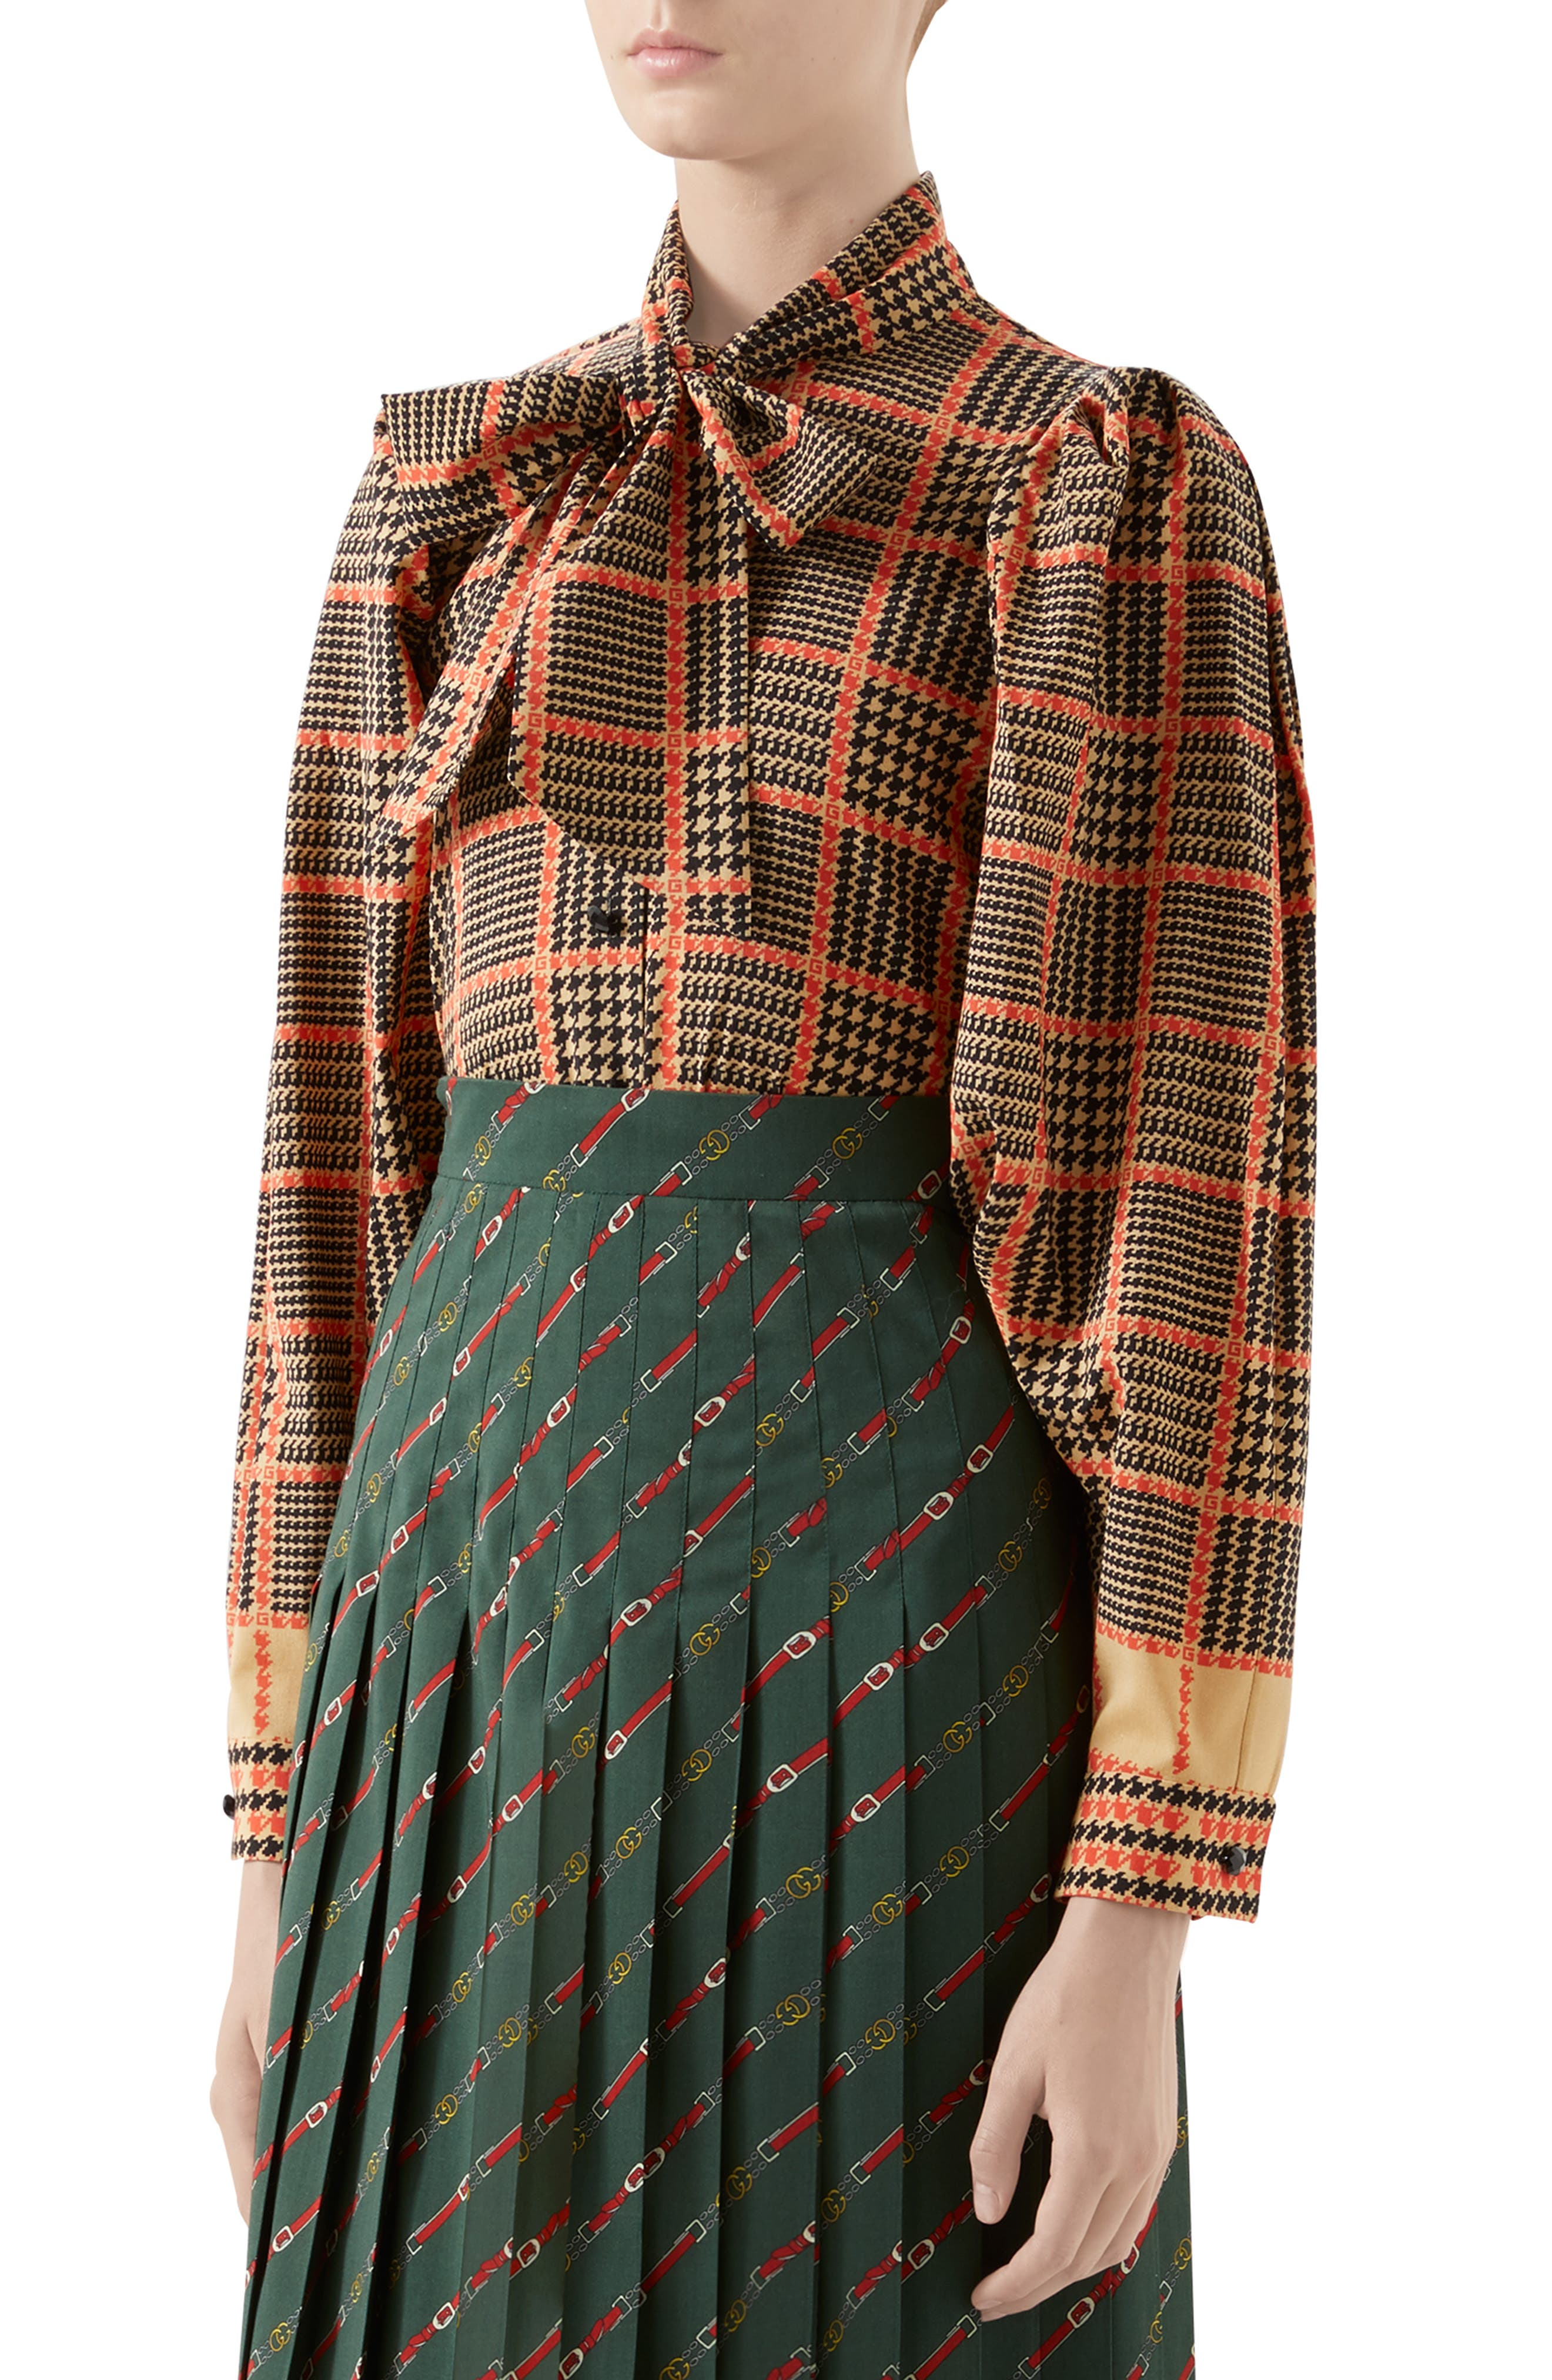 Gucci Tops Tie Neck Houndstooth Print Wool Blouse